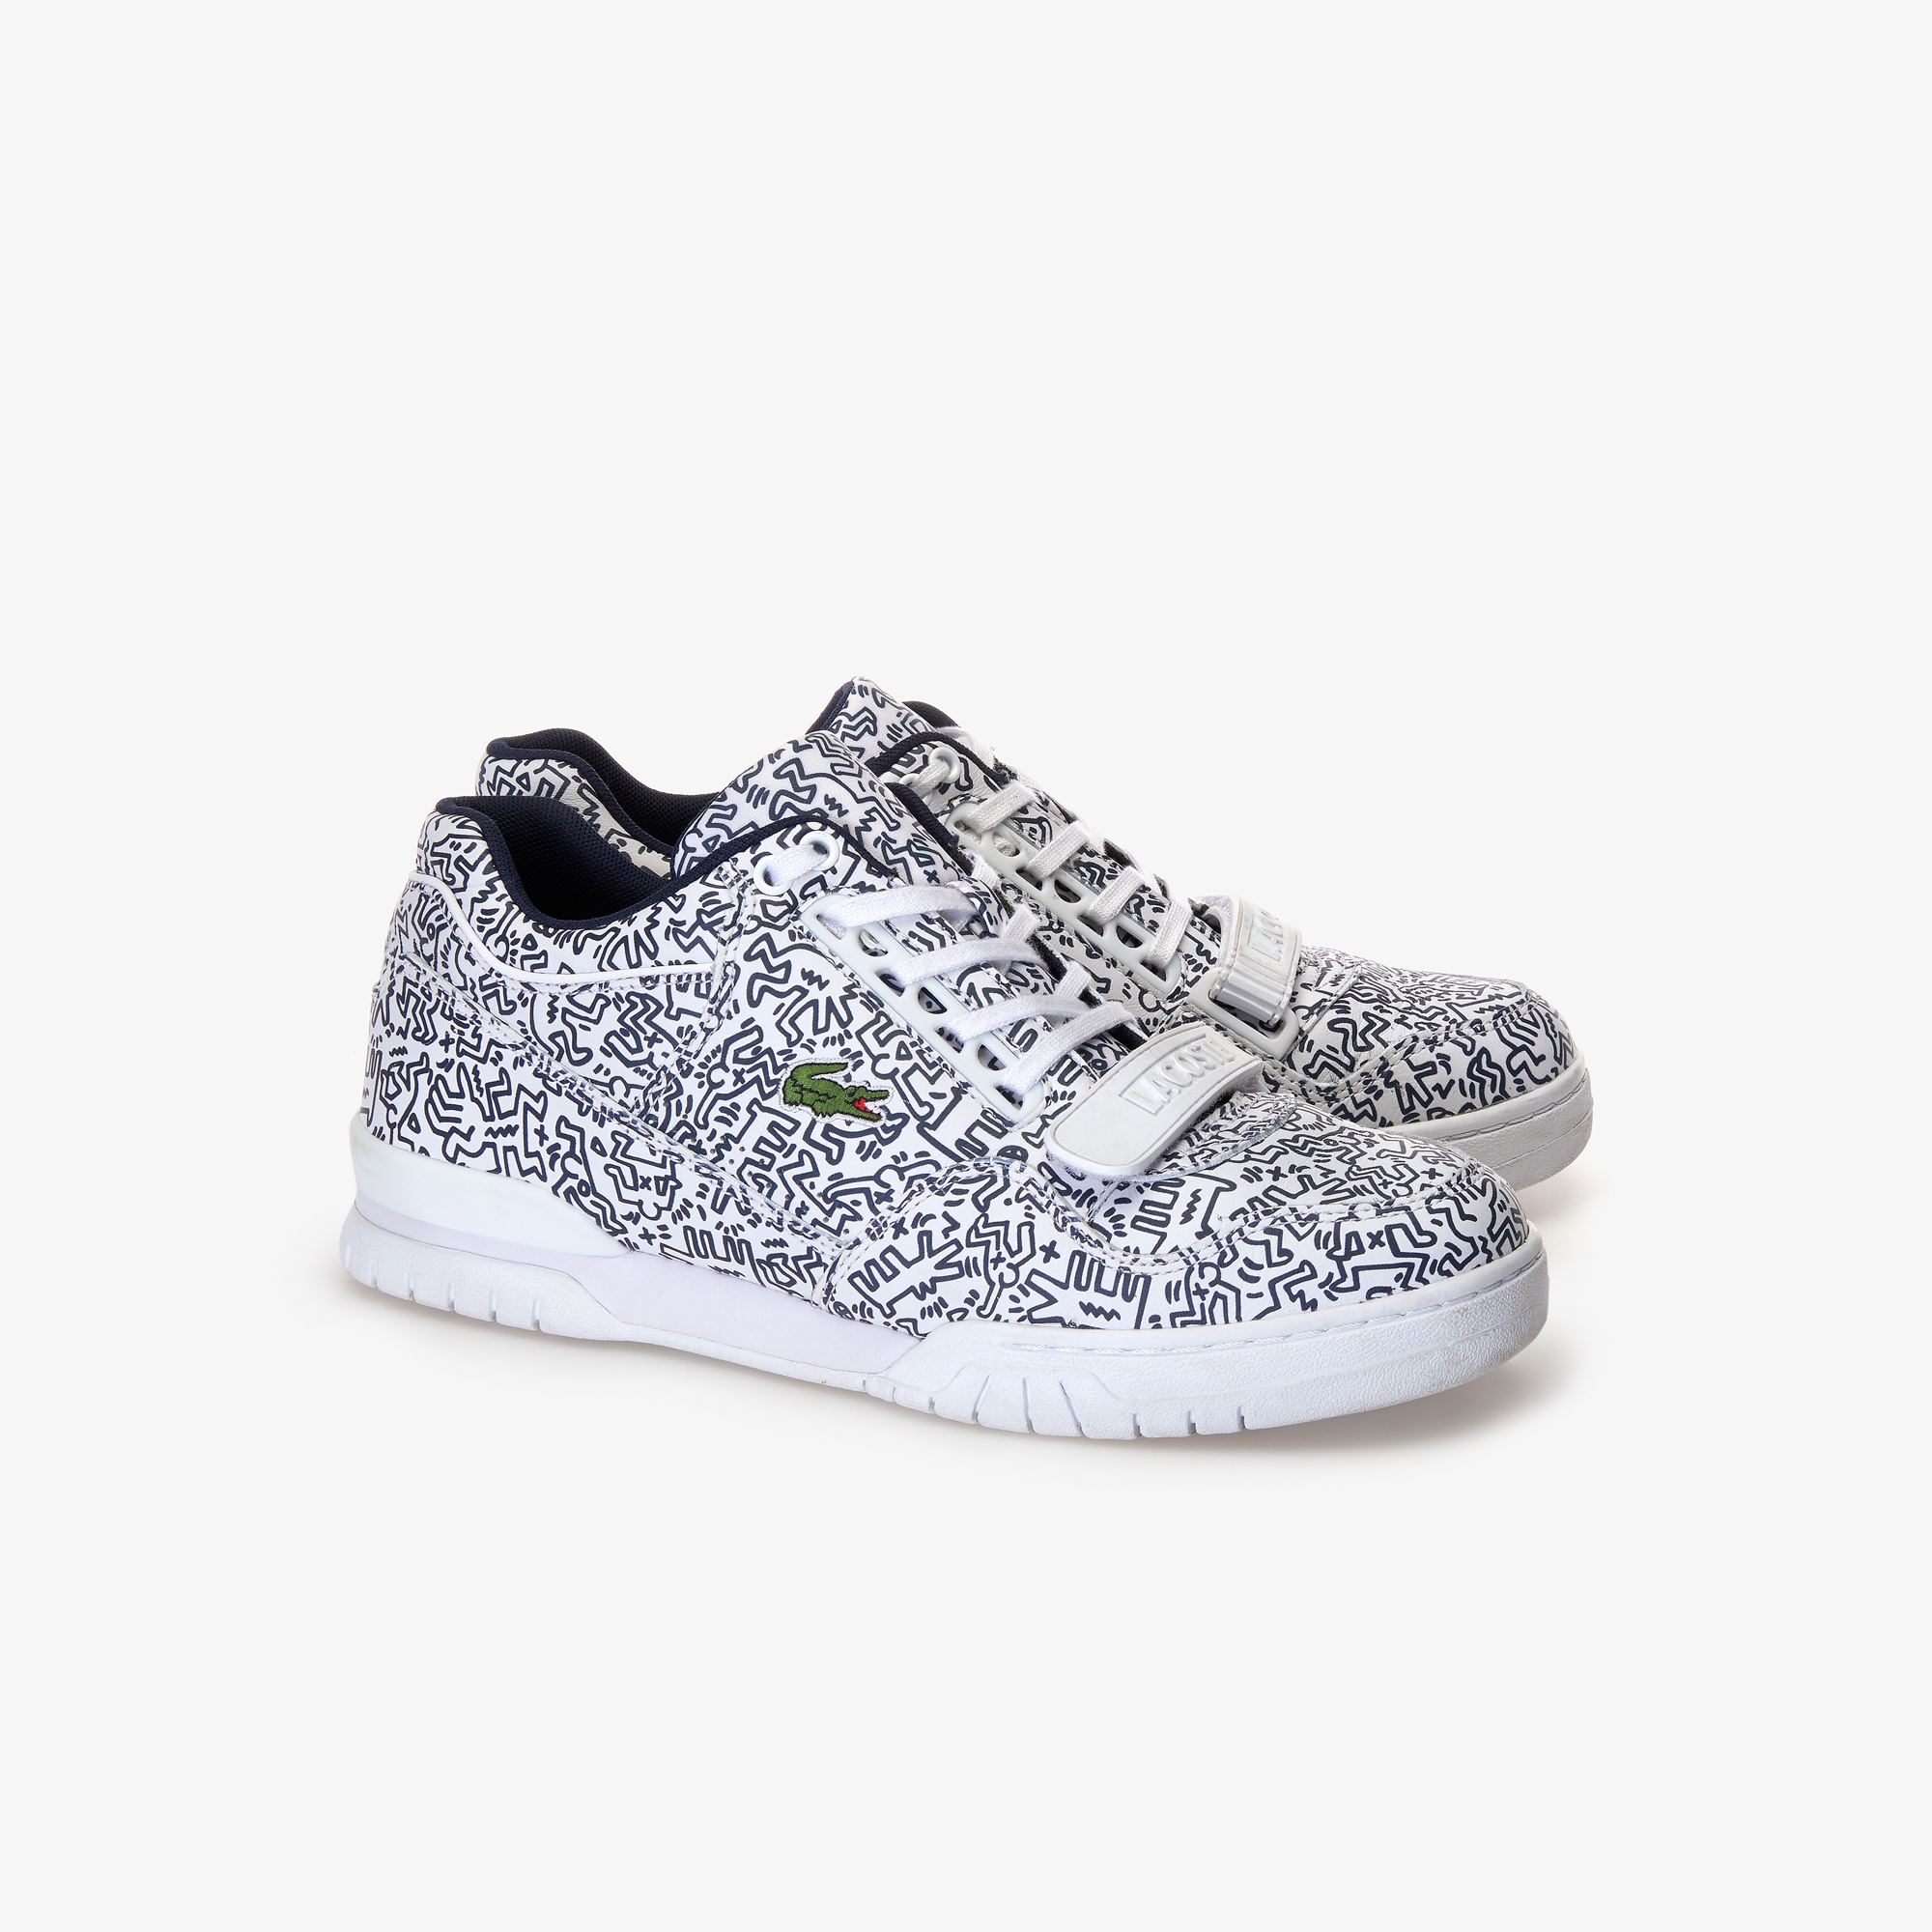 Lacoste x Keith Haring Missouri 119 1 KH SMA WHT-NVY $159.95